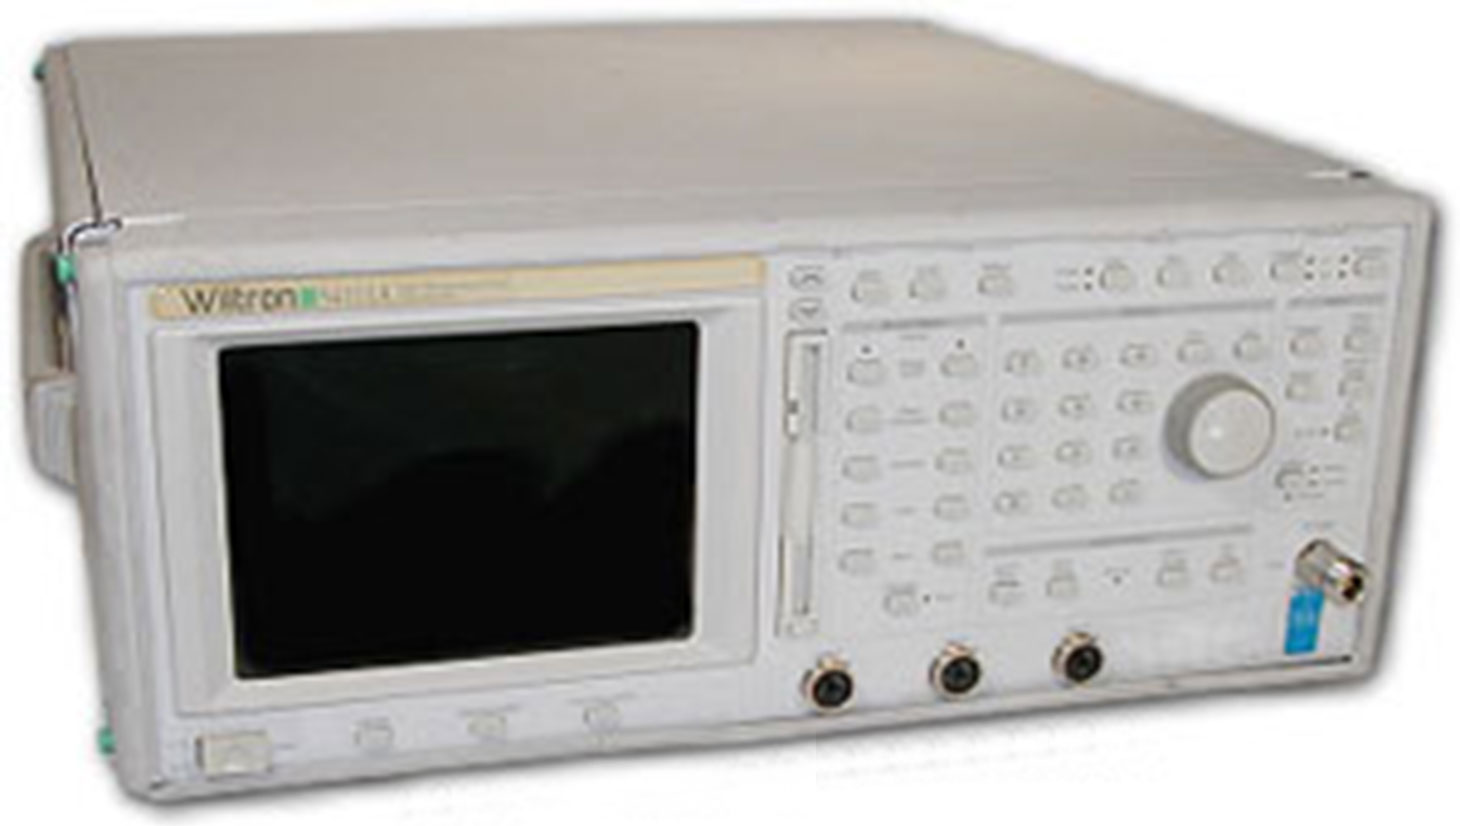 Wiltron 54111A Scalar Network Analyzer